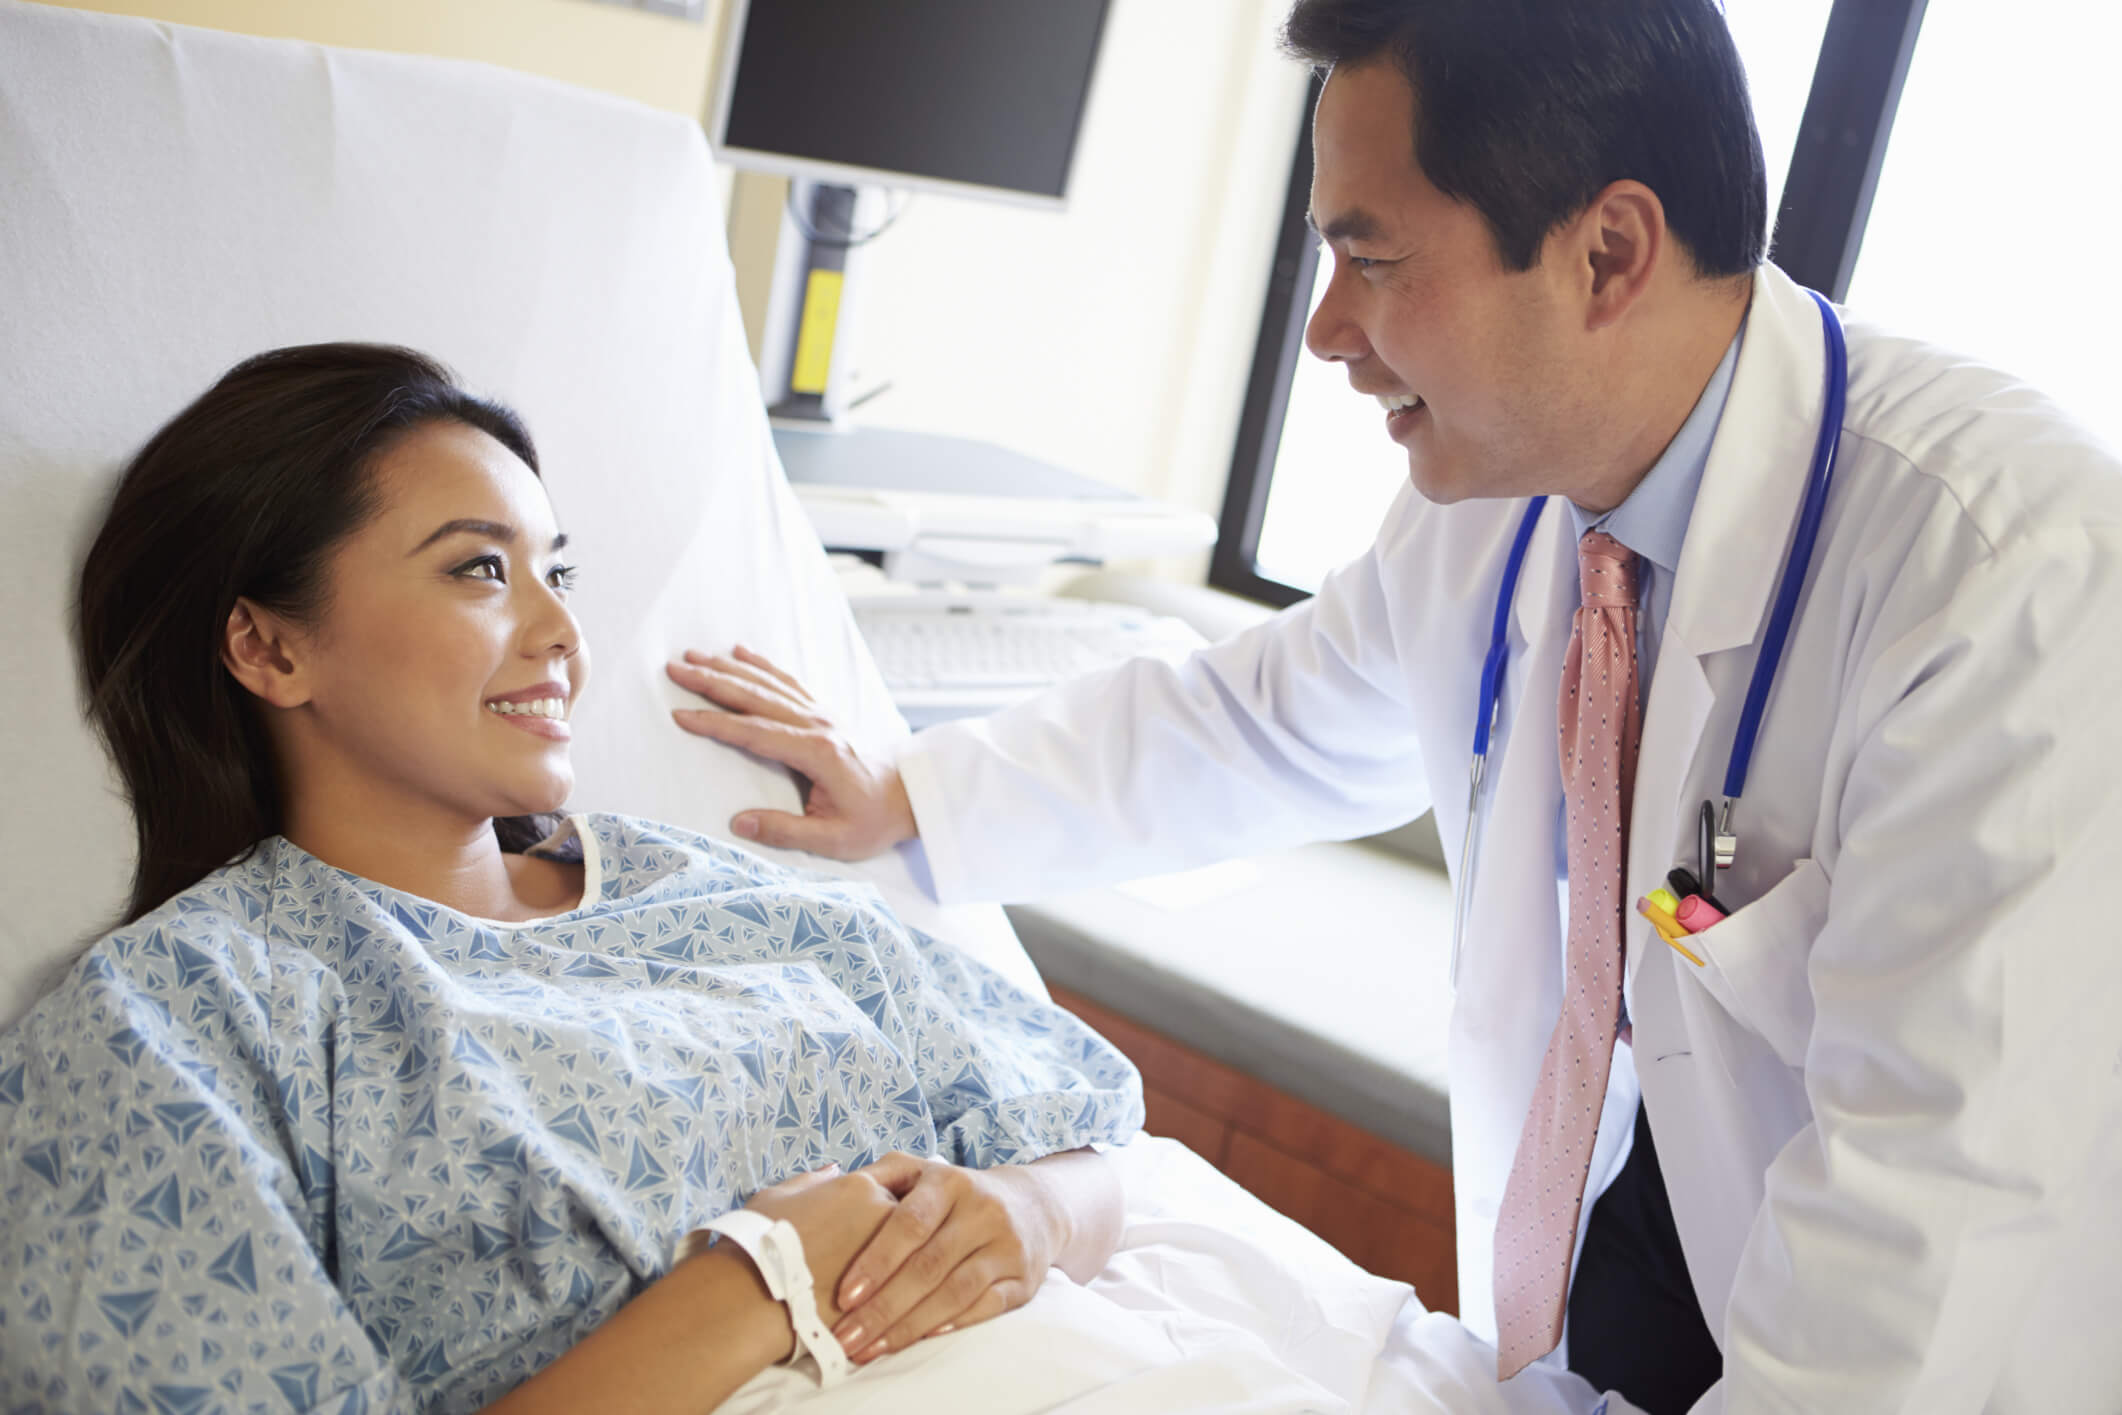 4 Important Questions You Should Ask Your Doctor